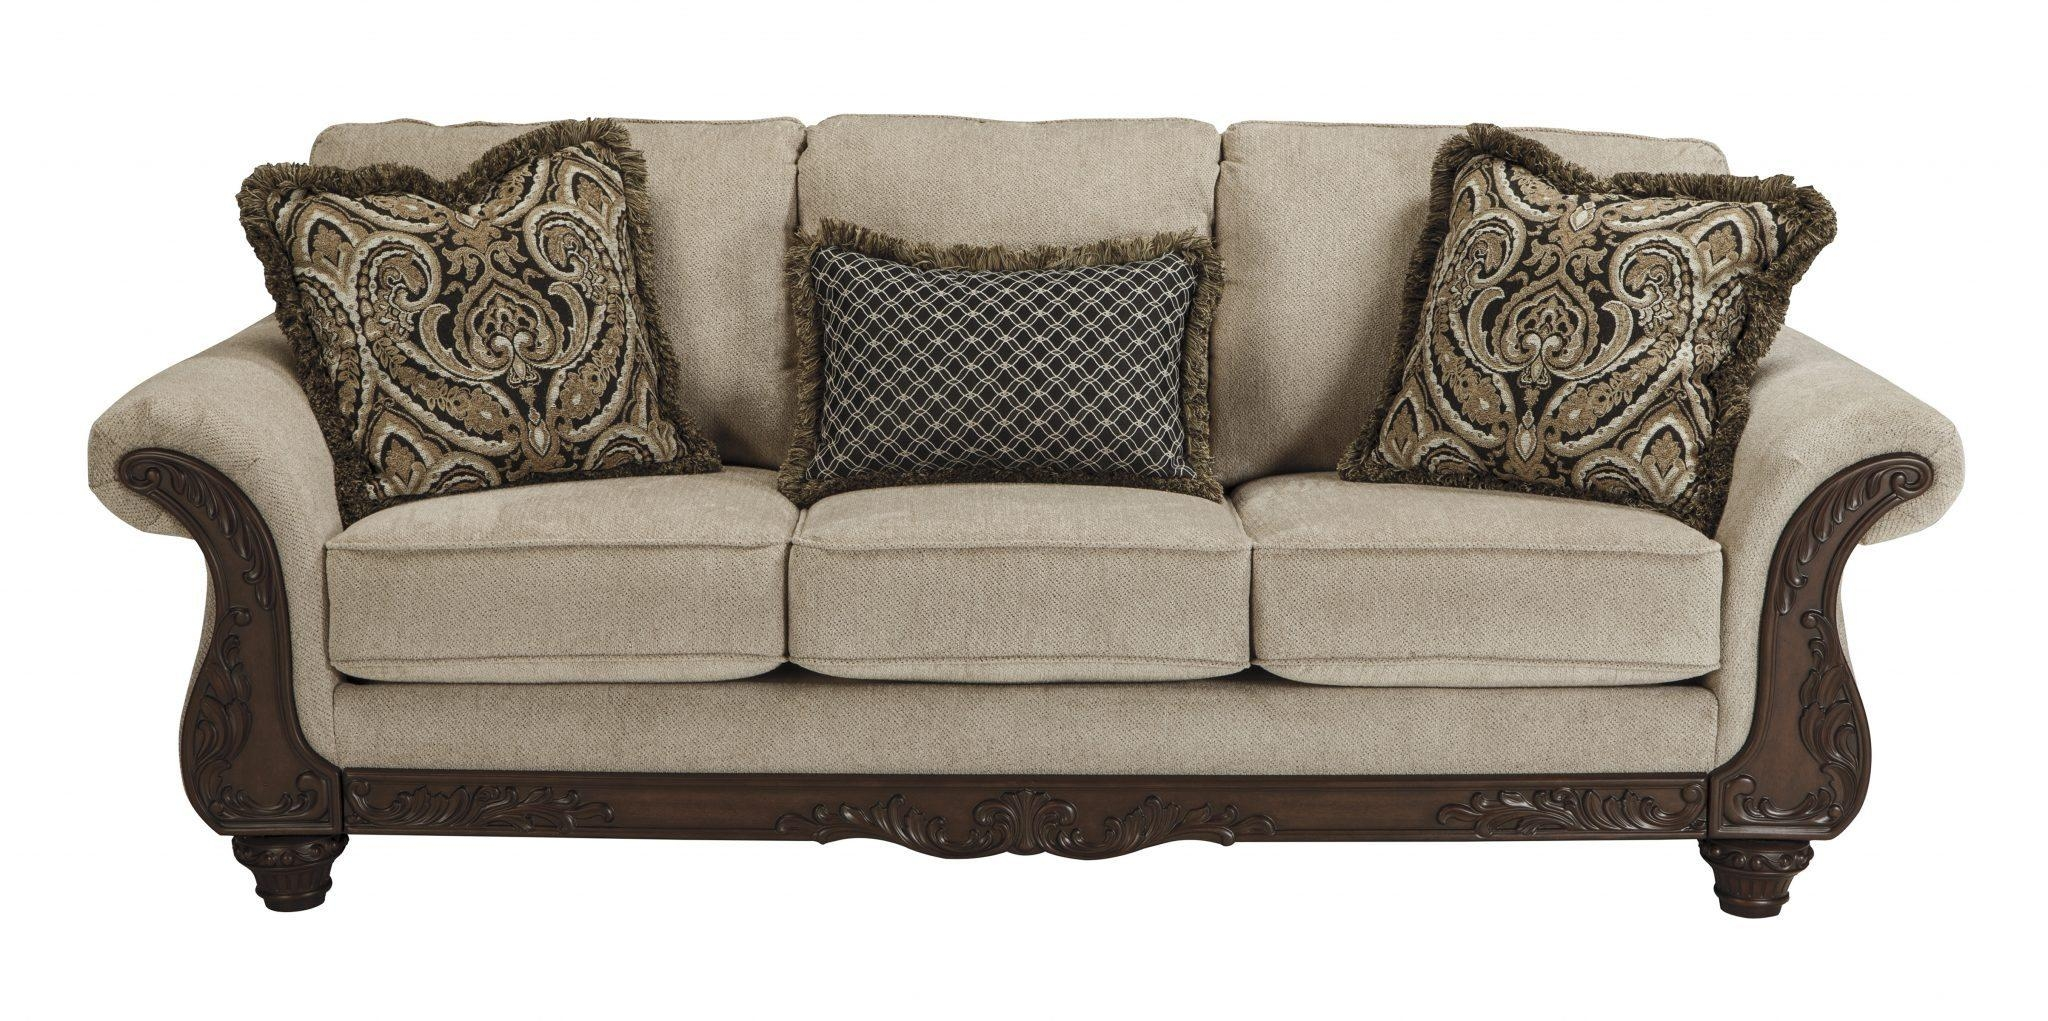 fancy sofa sets american freight reviews 20 top sofas ideas